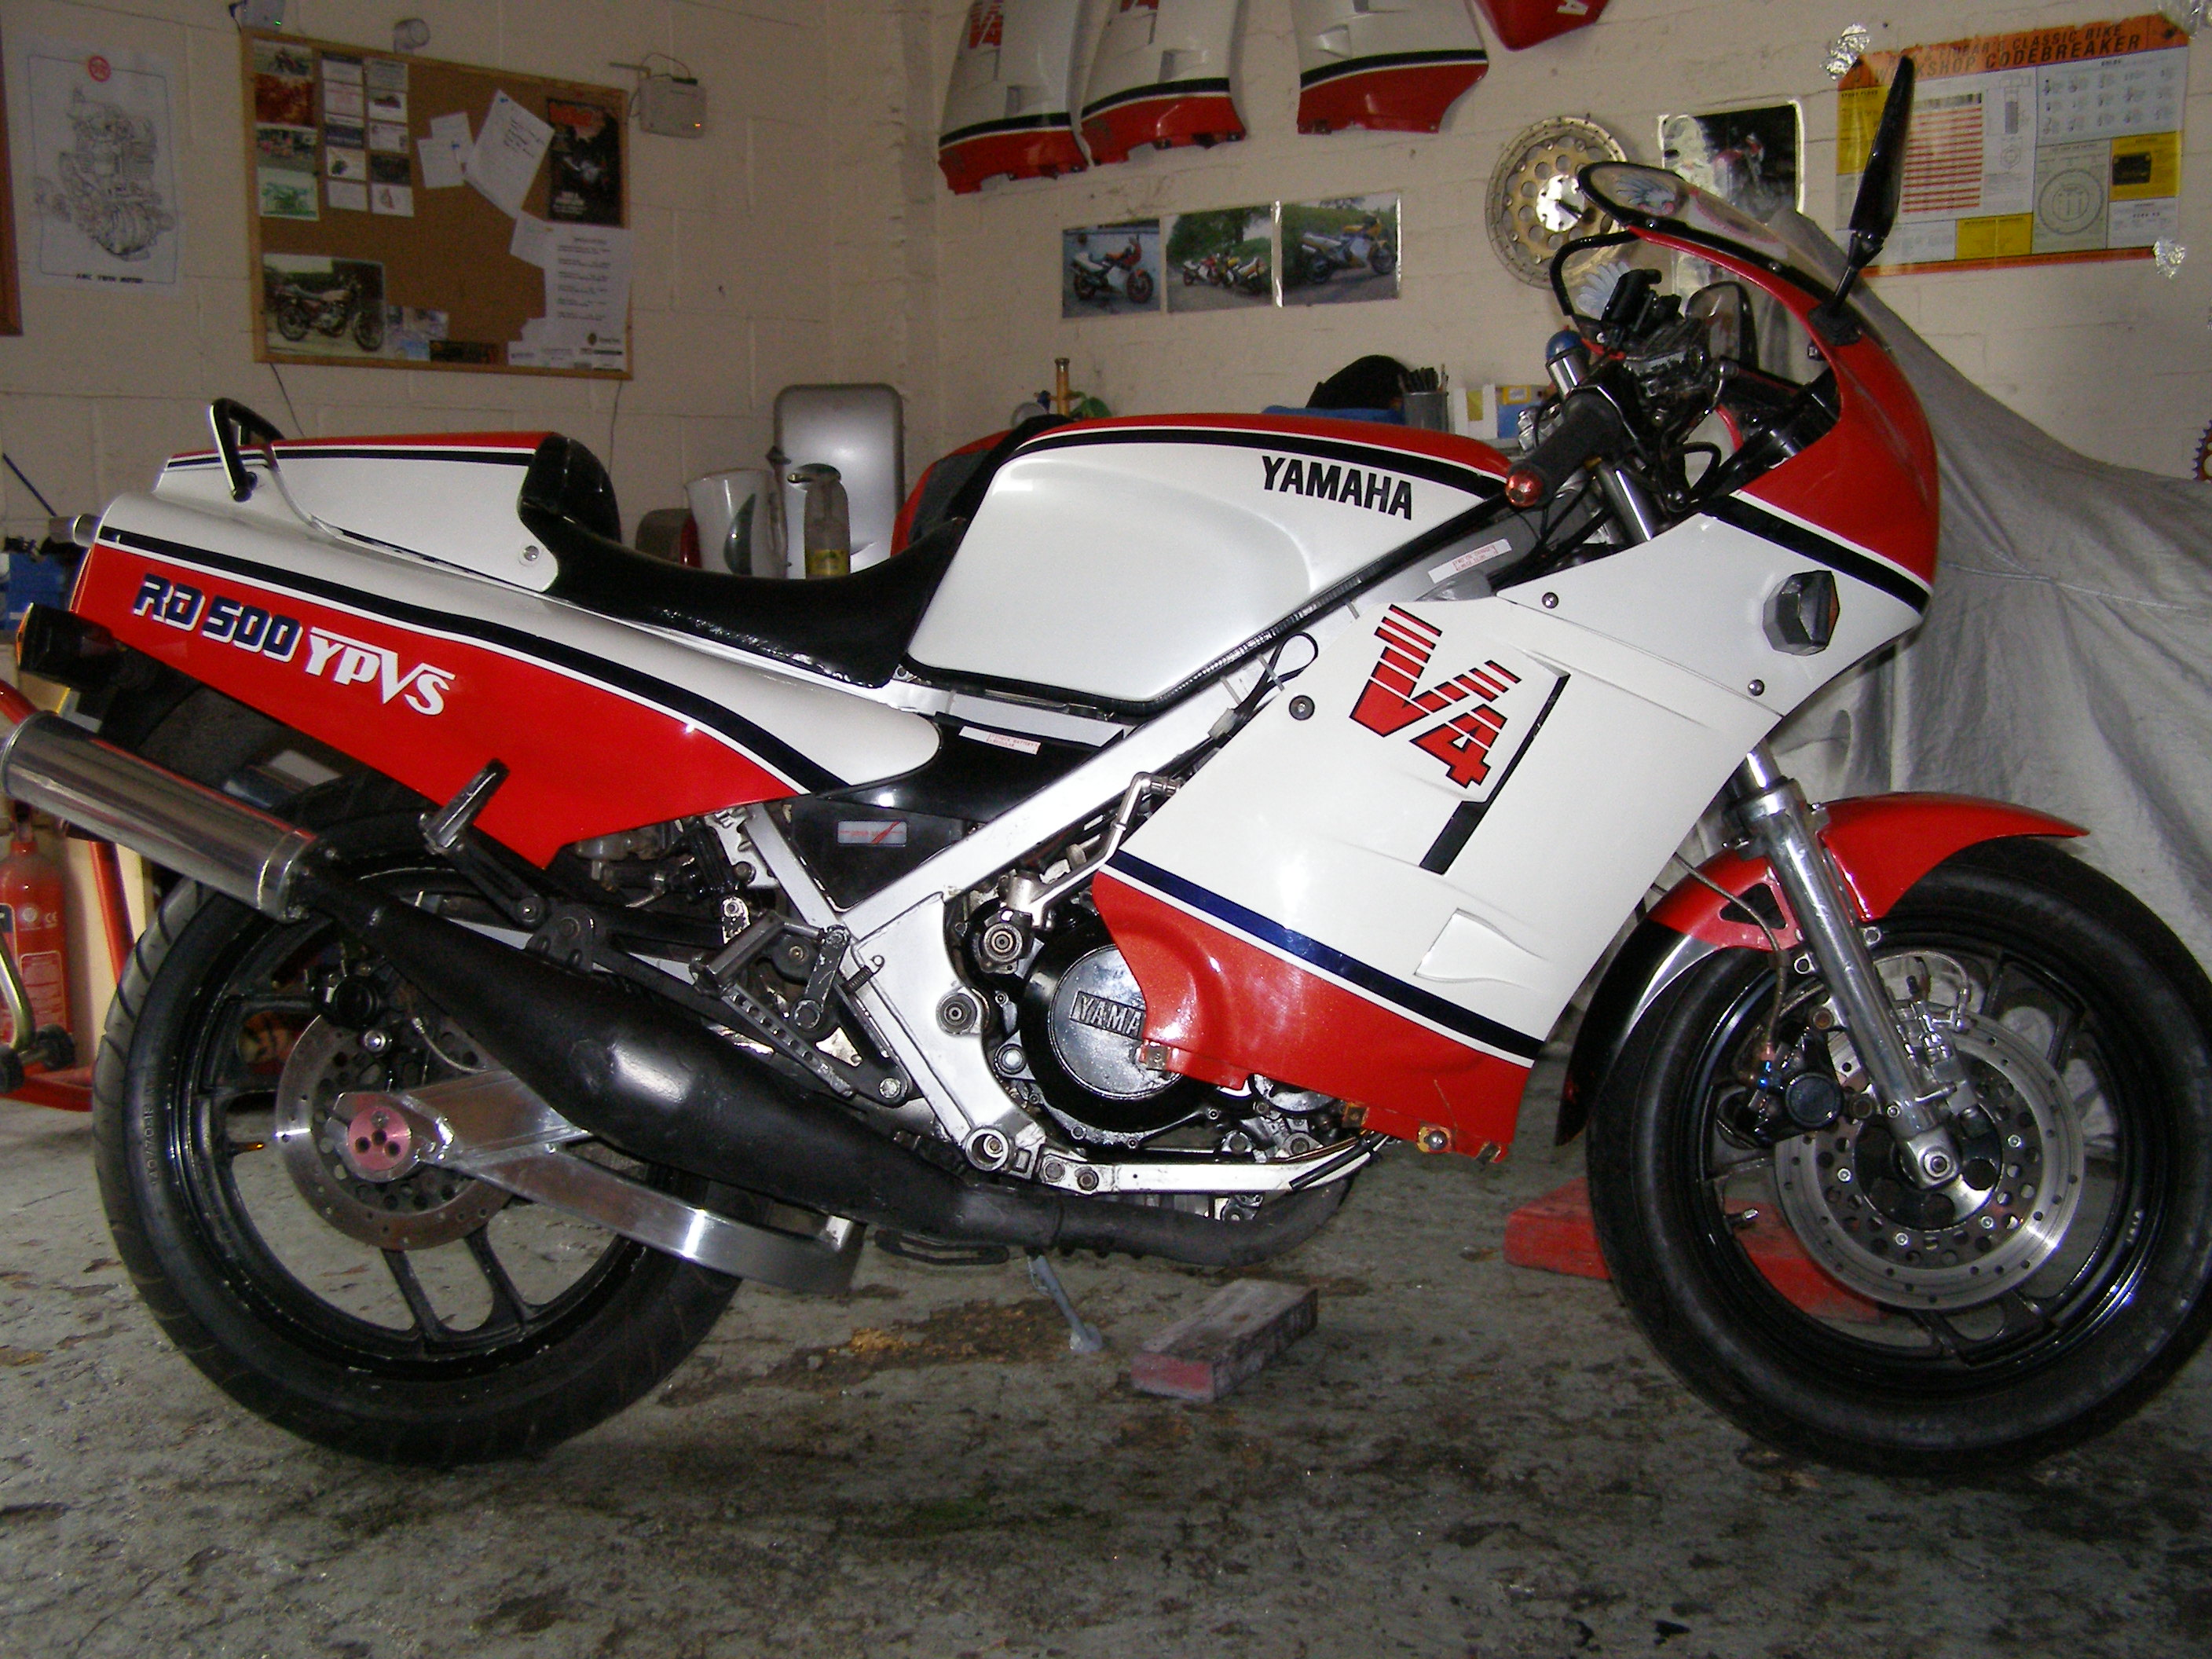 Yamaha RD 500 LC 1985 images #90040